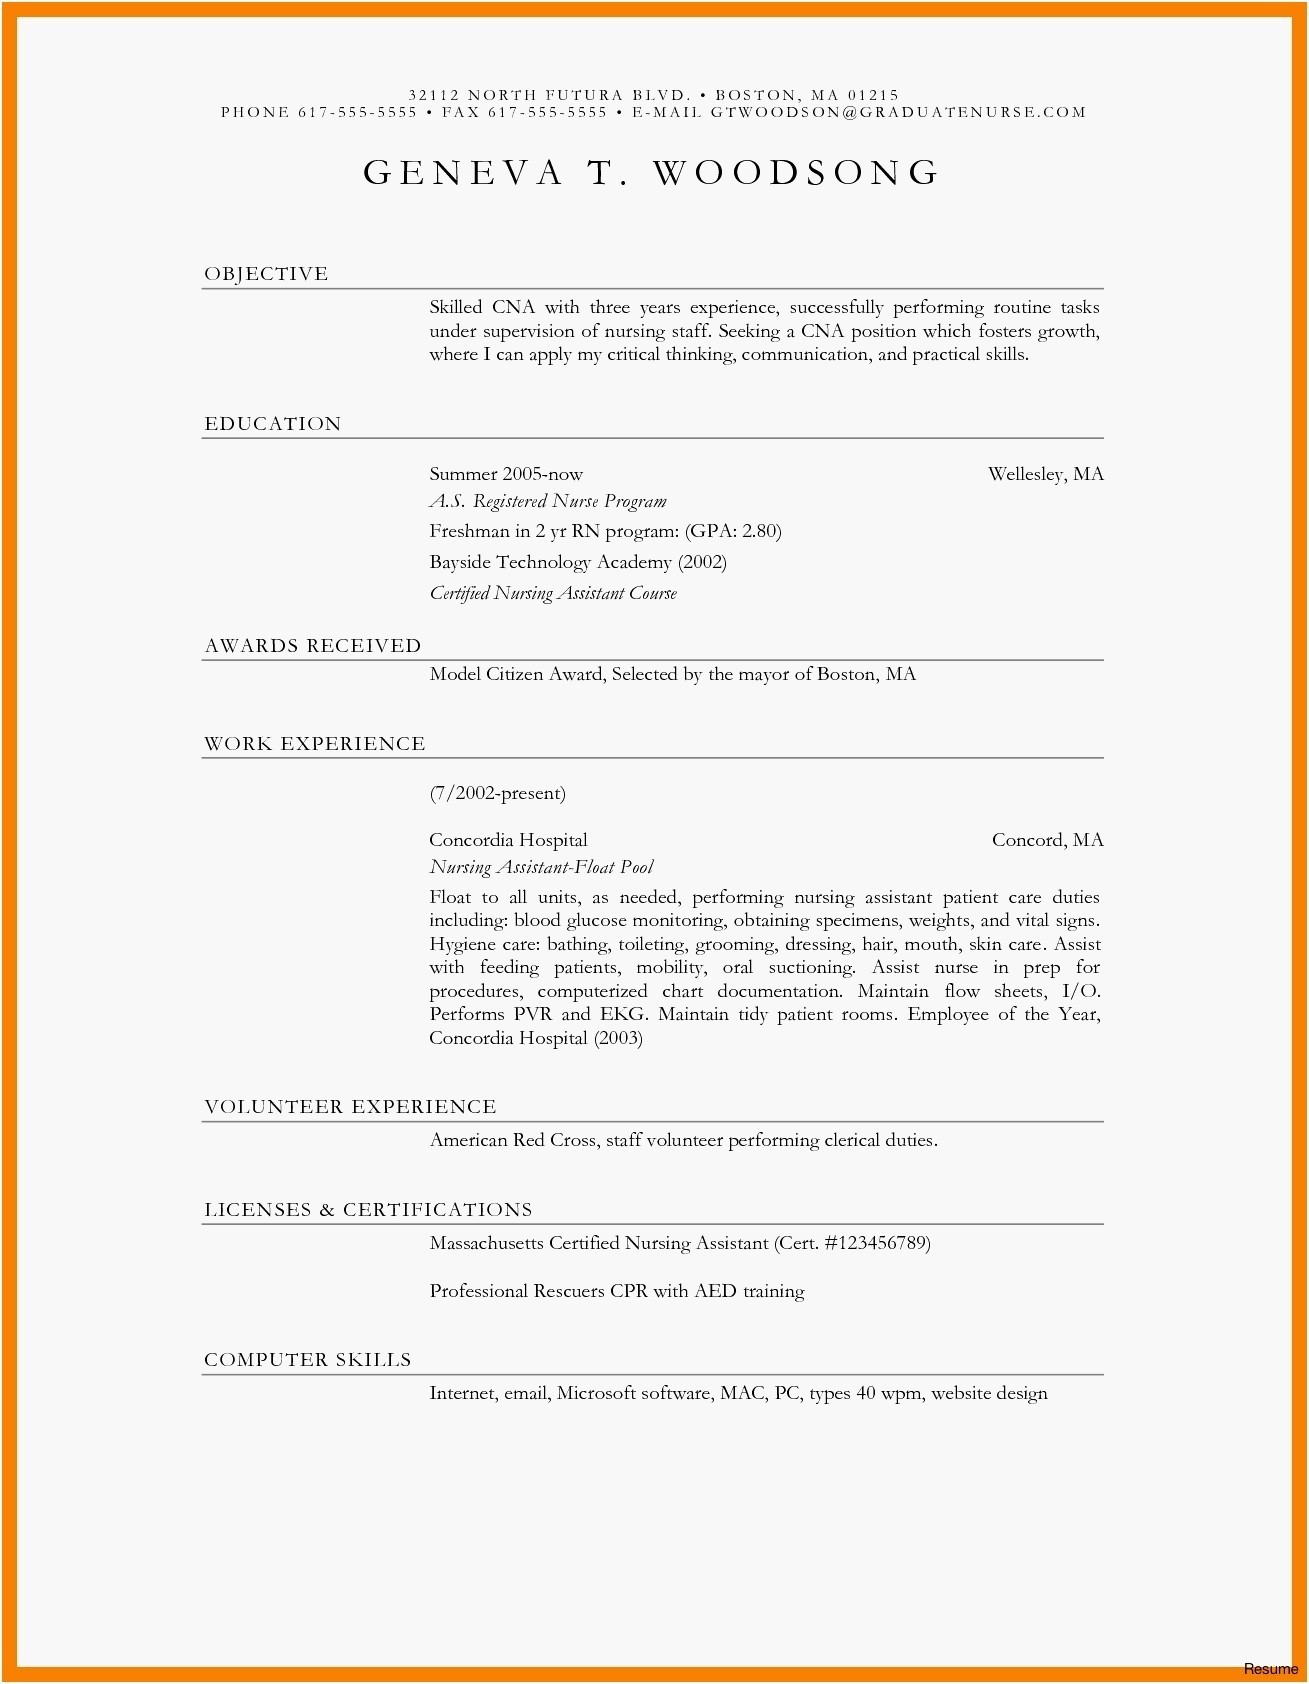 Simple Resume Cover Letter Template - Cover Letter for Resume Template Fresh 22 Luxury Free Resume Cover